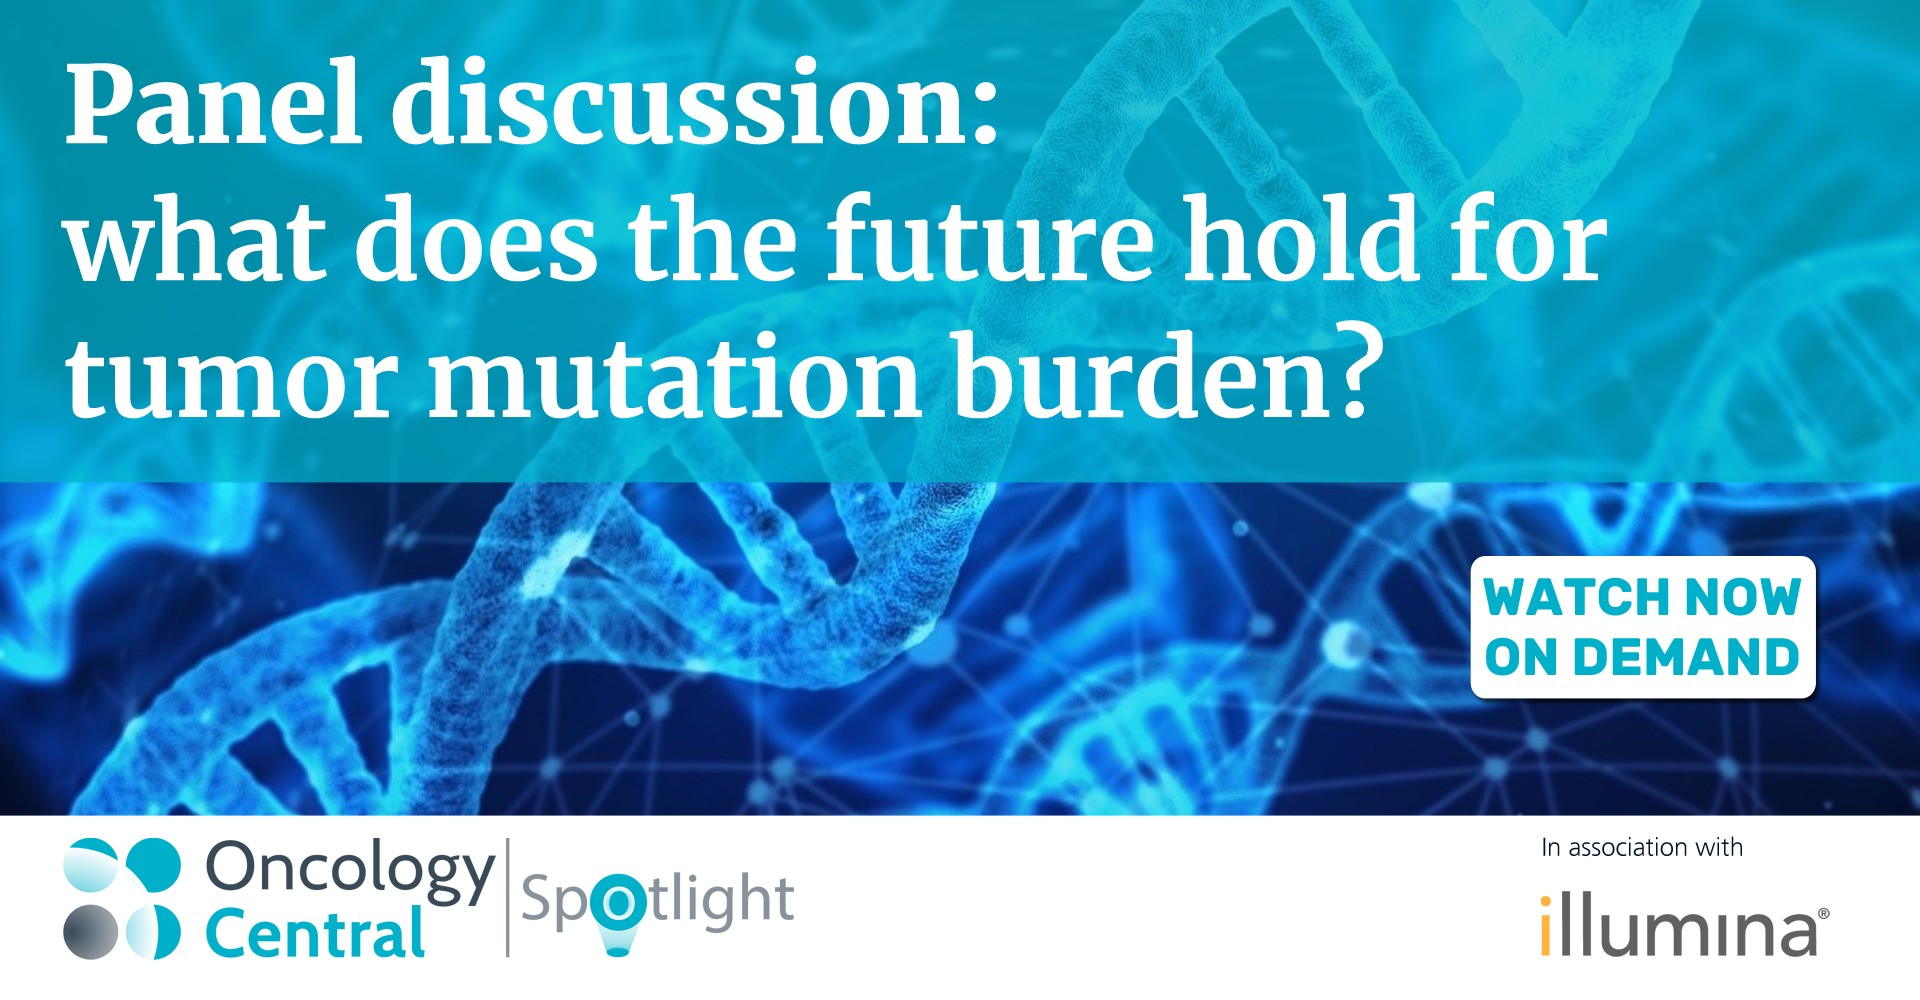 Panel discussion: what does the future hold for tumor mutational